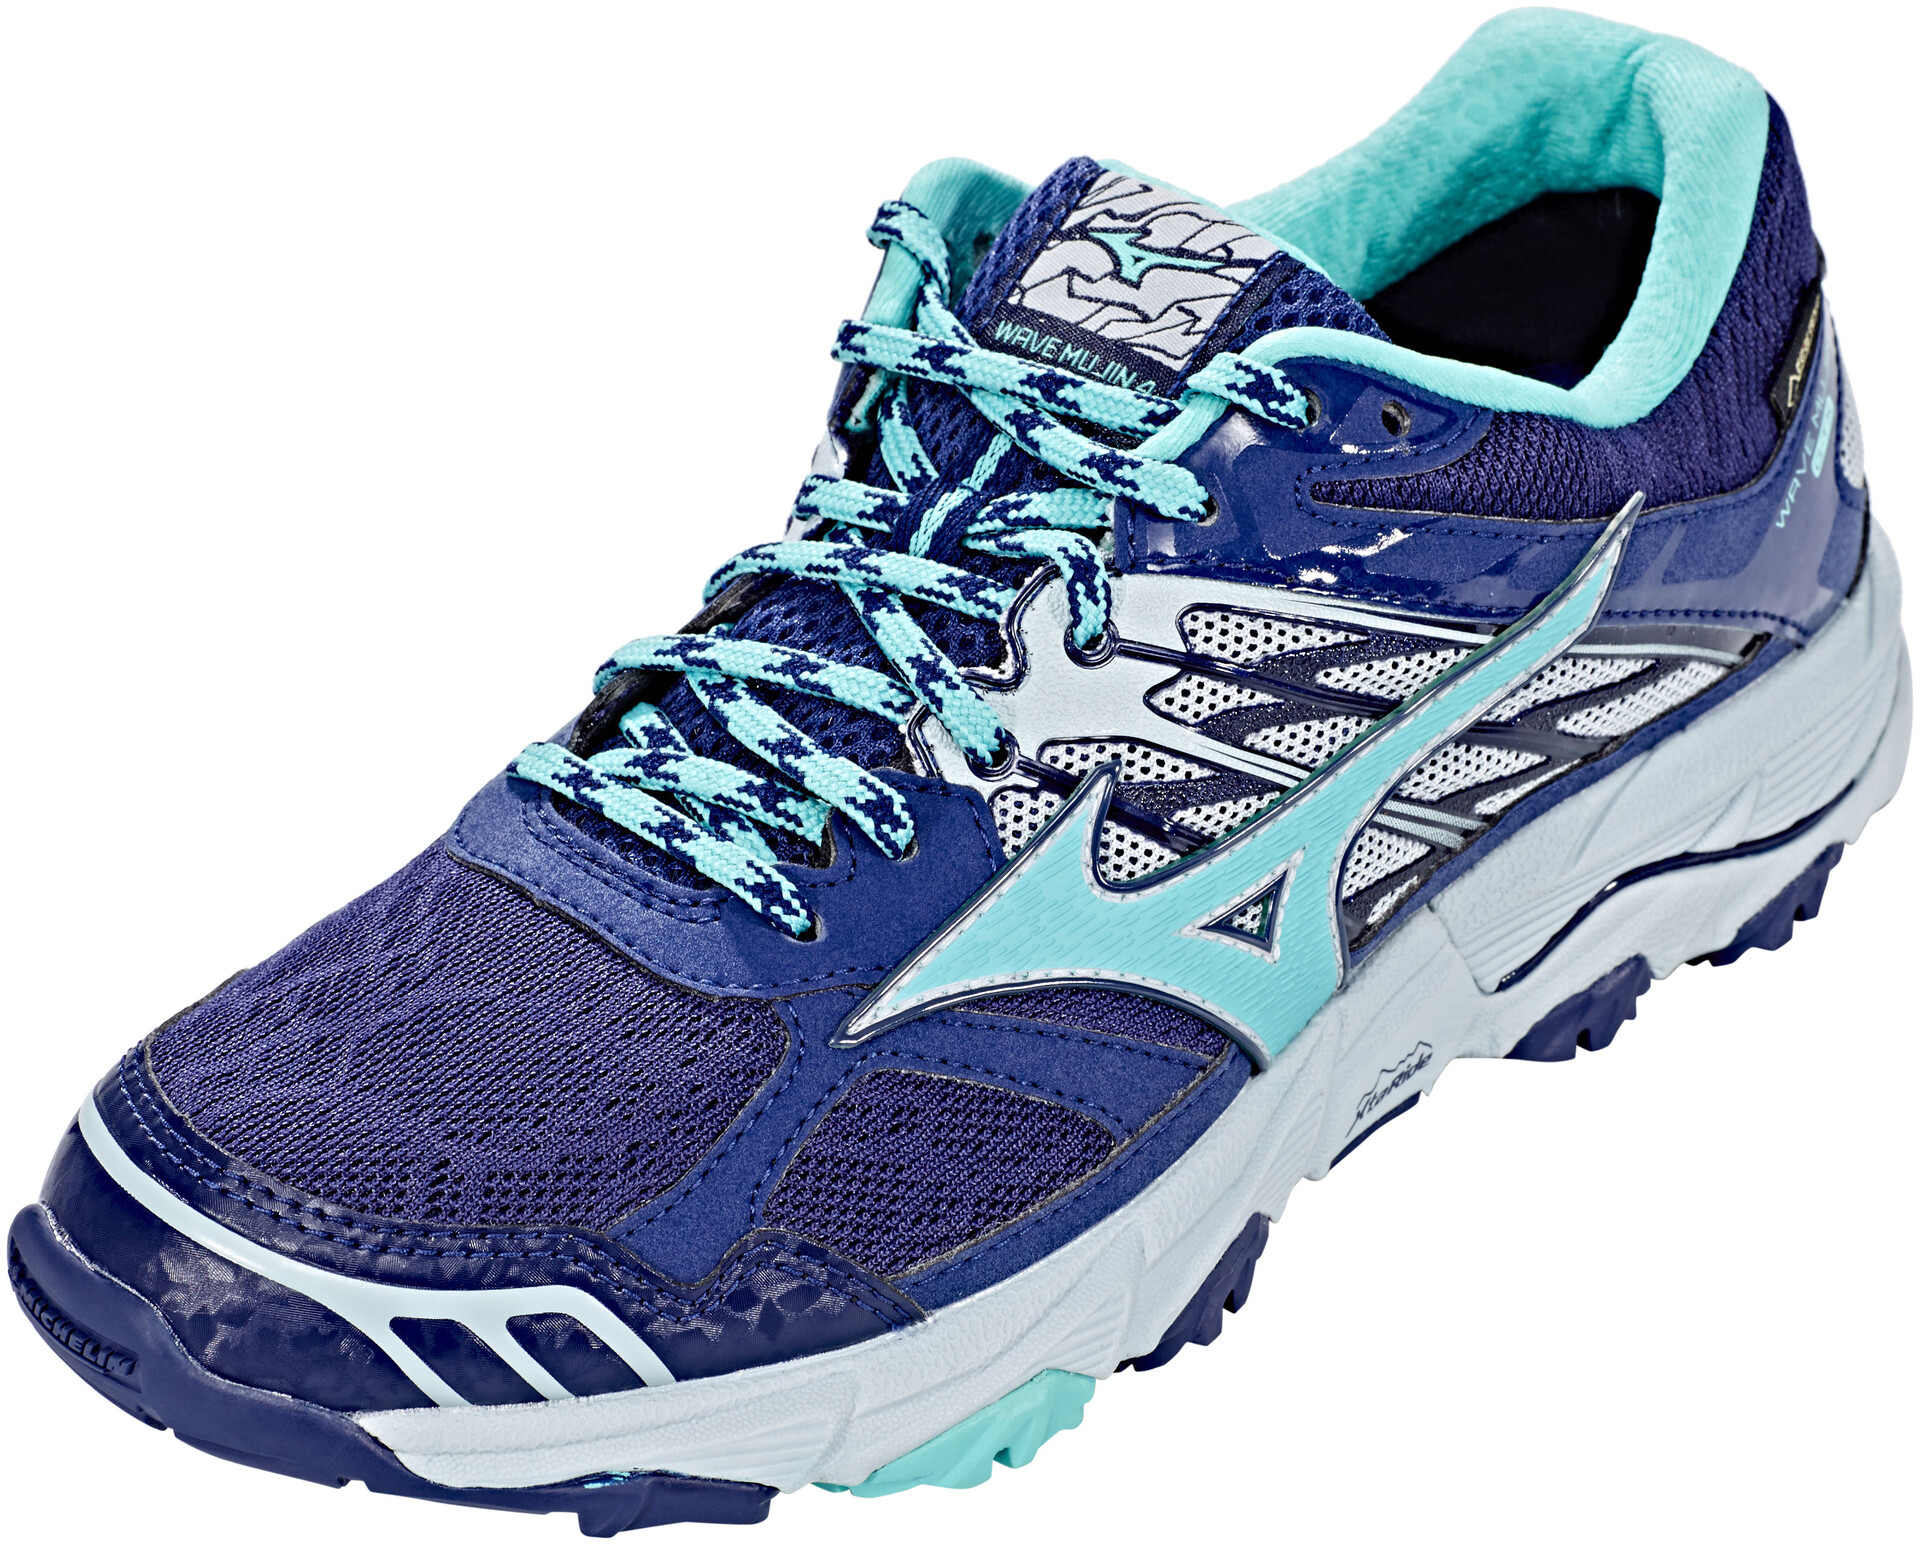 4 Mujin Tx G Shoes Women Patriot Mizuno Blue Blueturquoisepearl Wave PkXuZi